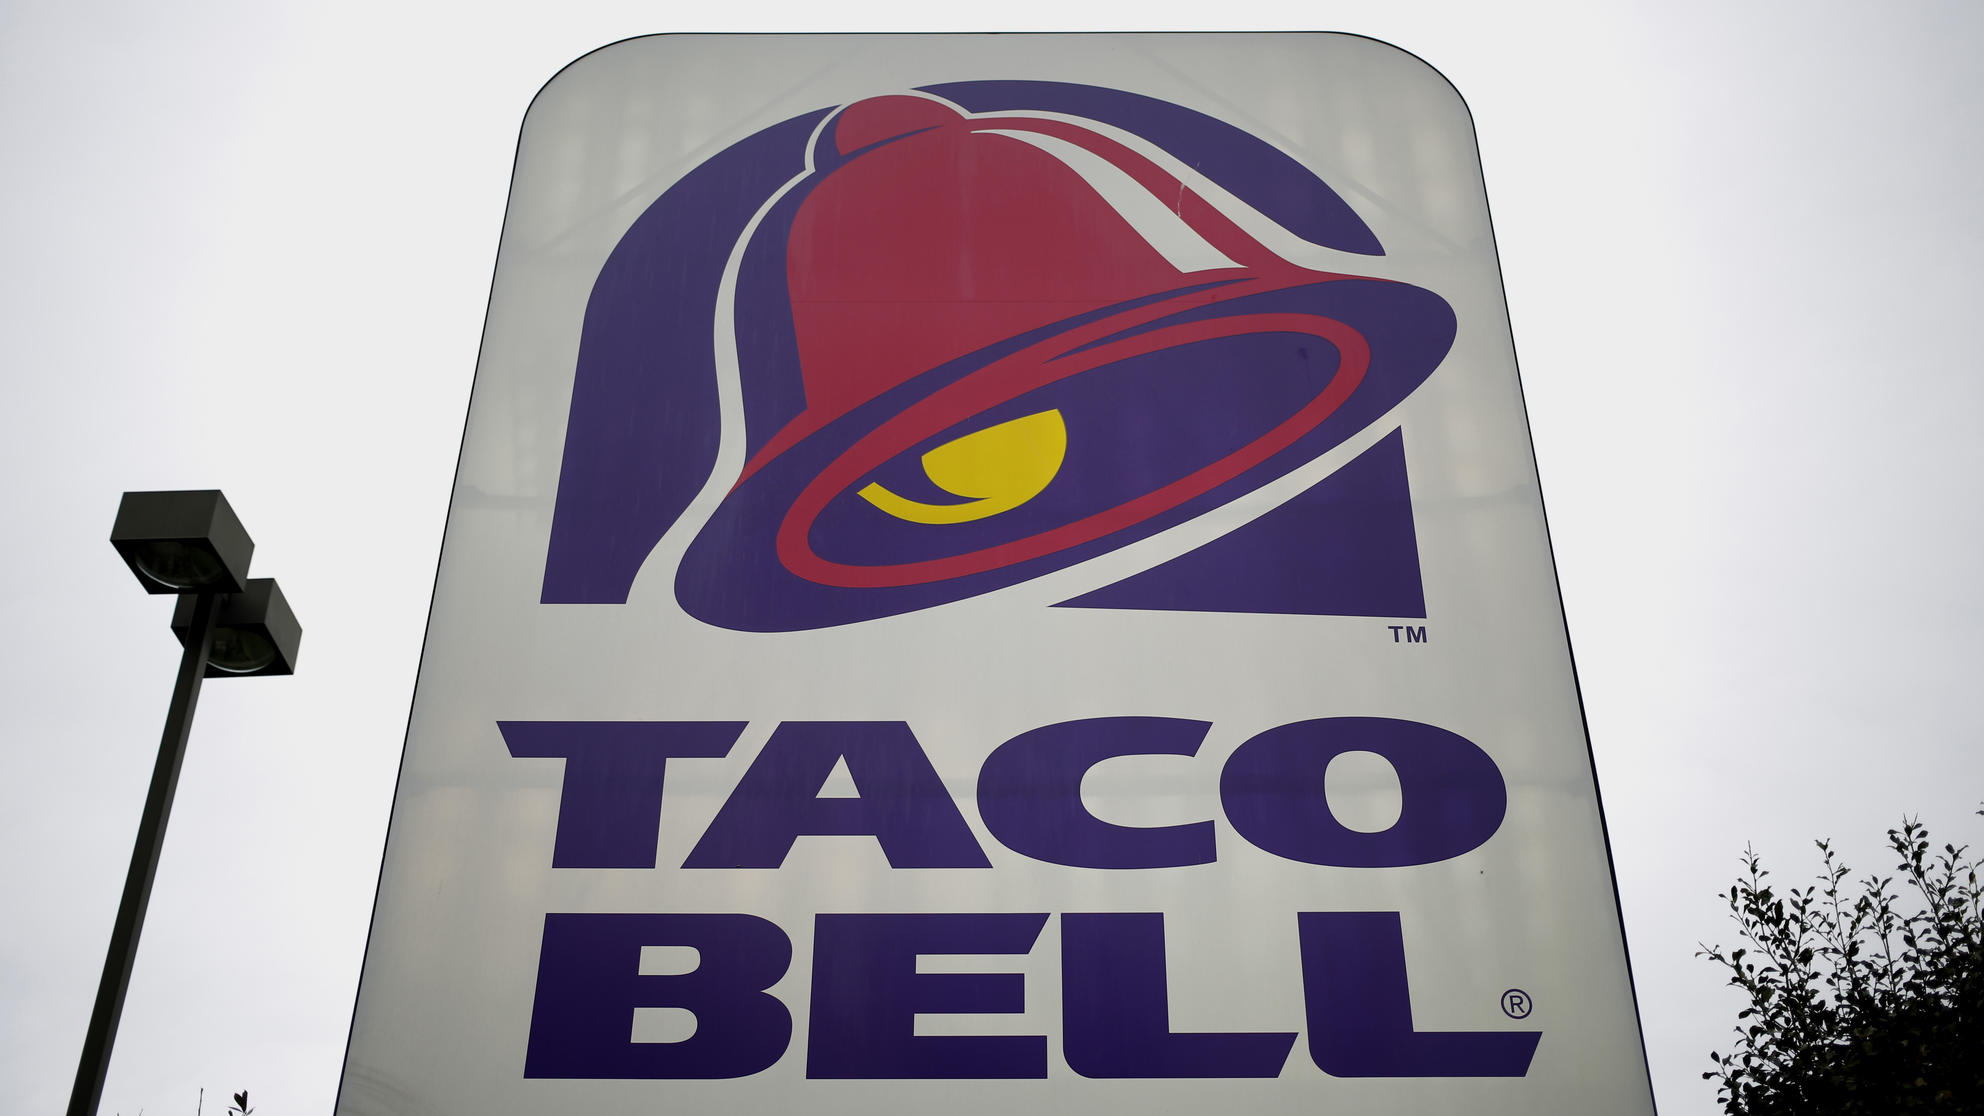 4 RD-Approved Things You Can Order at Taco Bell